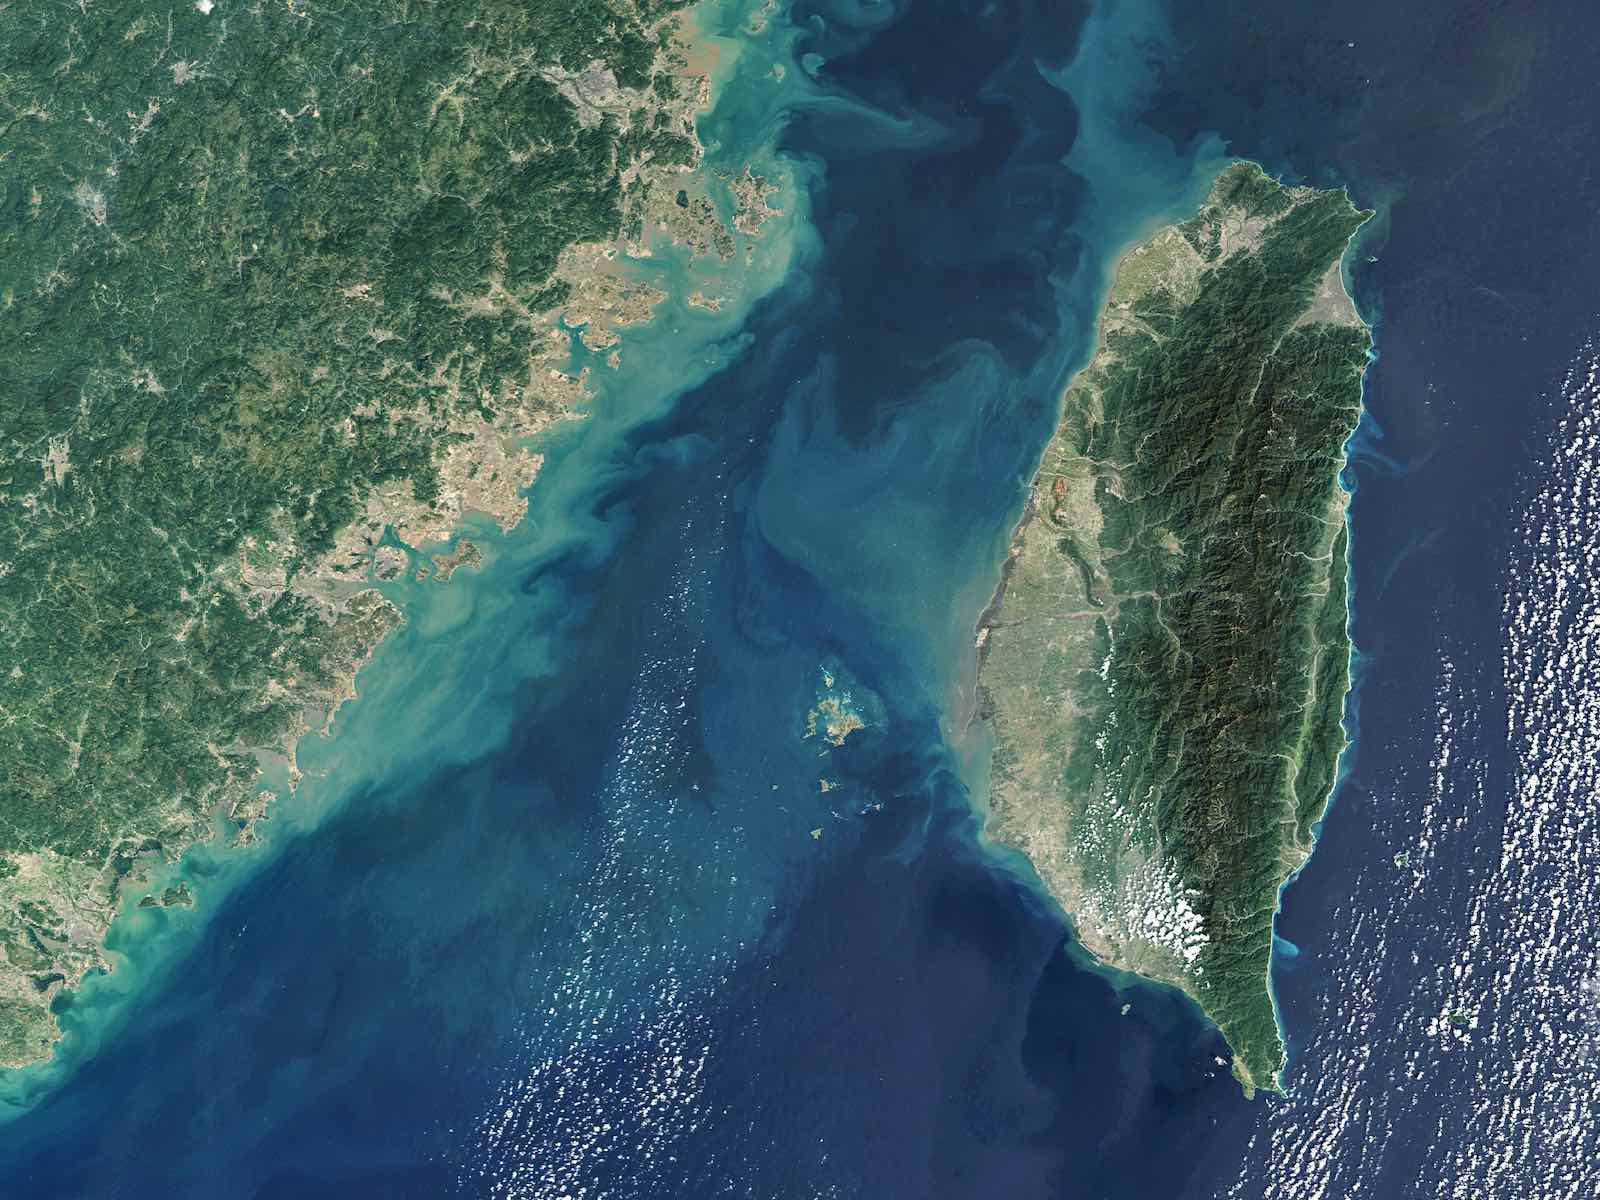 Satellite view of the Taiwan Strait (Gallo Images/Getty Images)